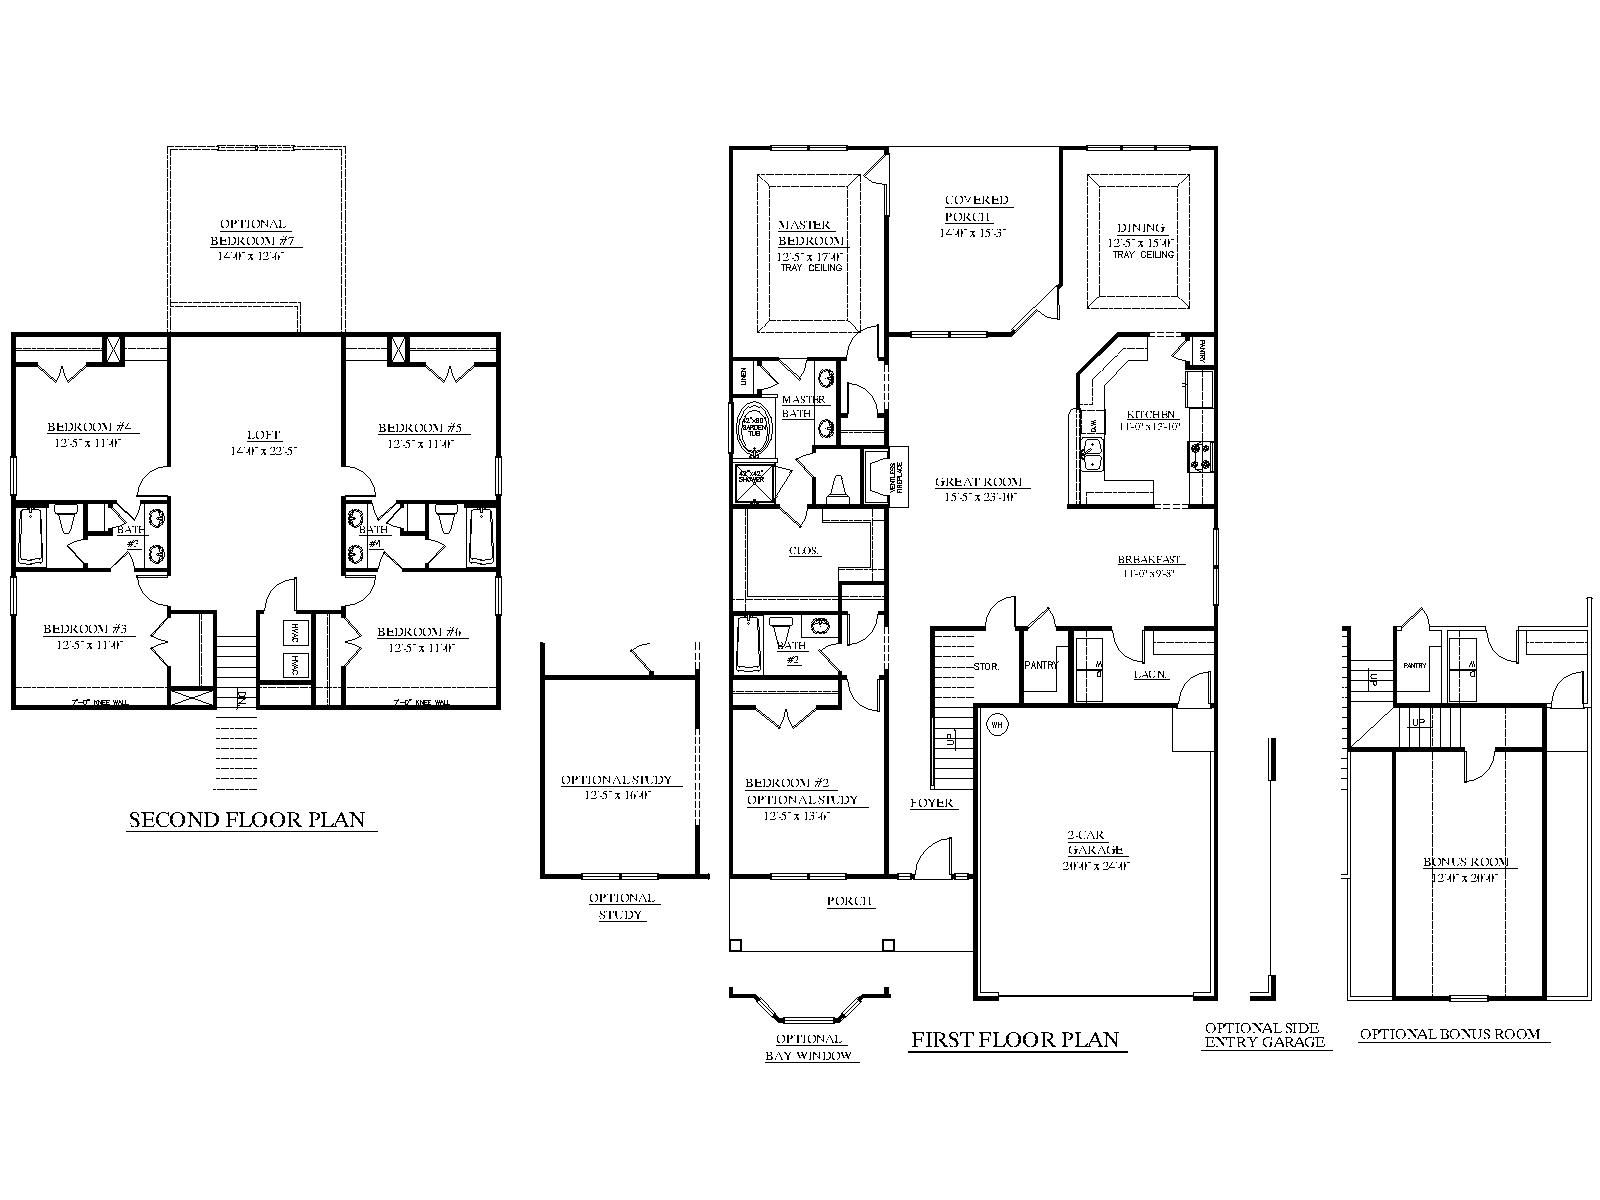 Bonus room over garage ideas for House plans with bonus room